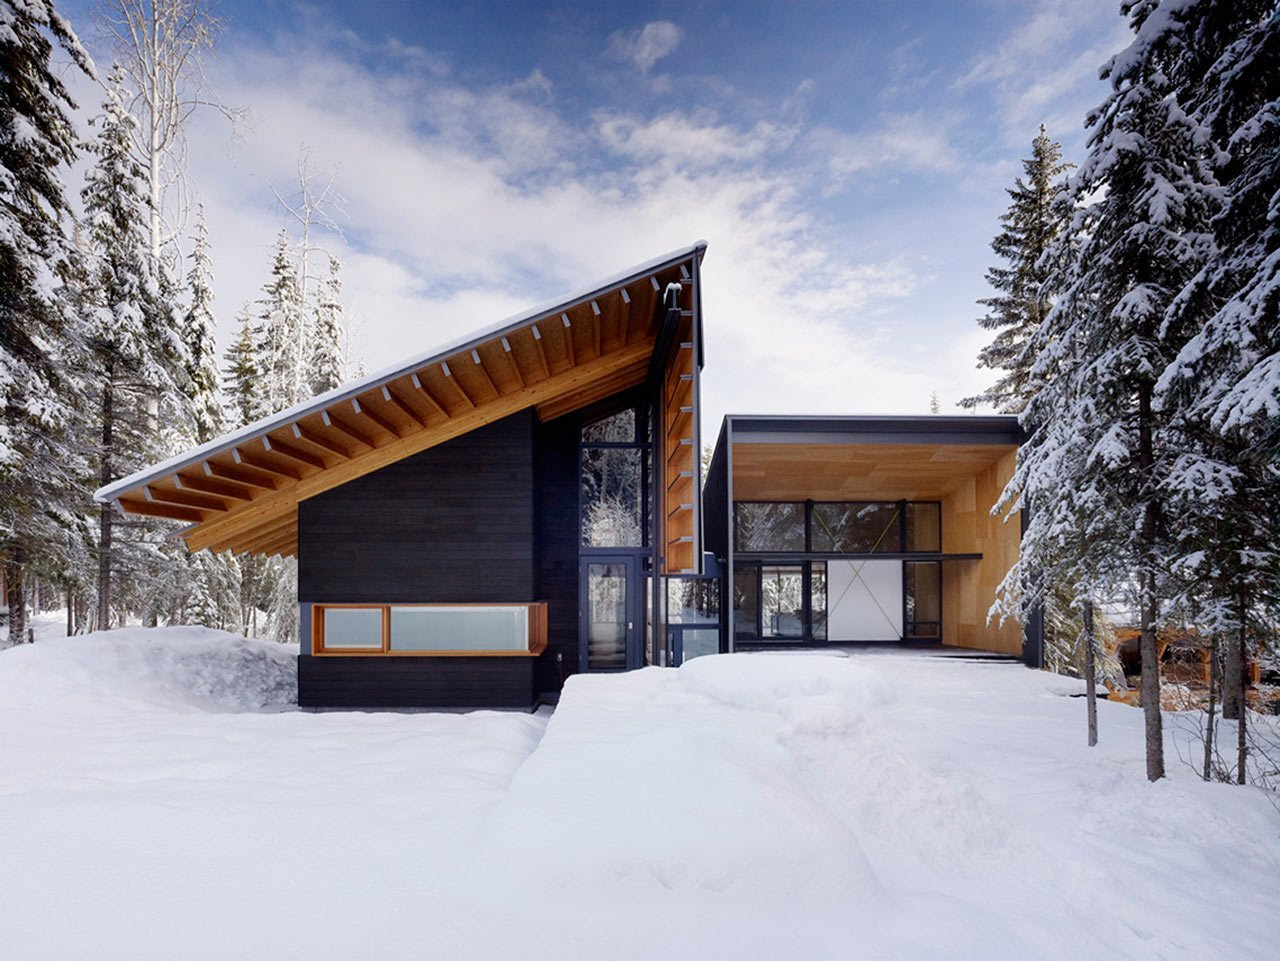 Located adjacent to Kicking Horse ski resort in the Canadian Rocky Mountains, the Kicking Horse Residence was designed by Bohlin Cywinski Jackson as a family weekend getaway built for some amazing skiing.  Photo 2 of 11 in 10 Modern Wintry Cabins We'd Be Happy to Hole Up In